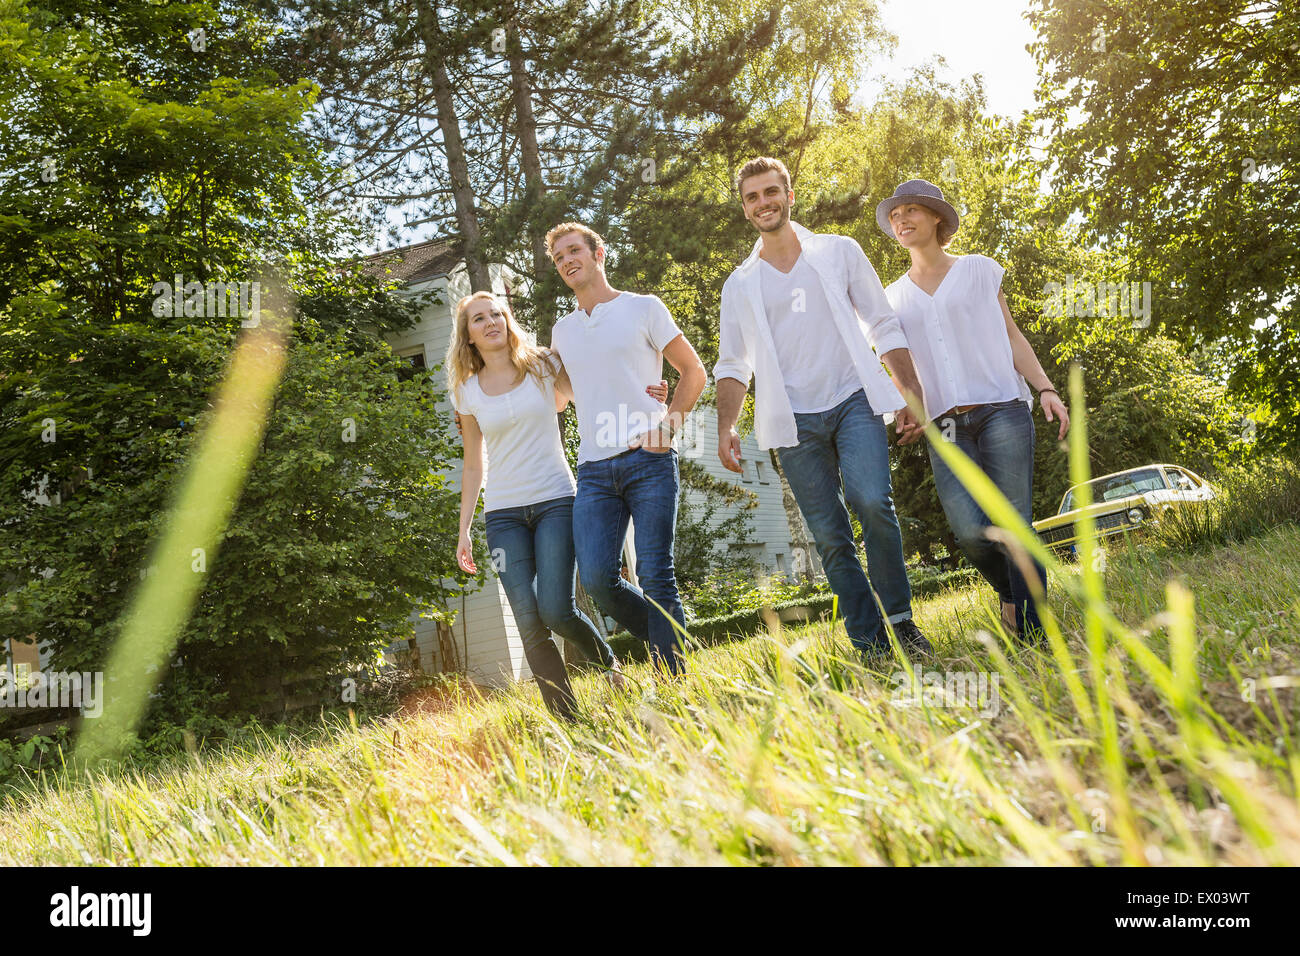 Group of people walking through forest Stock Photo